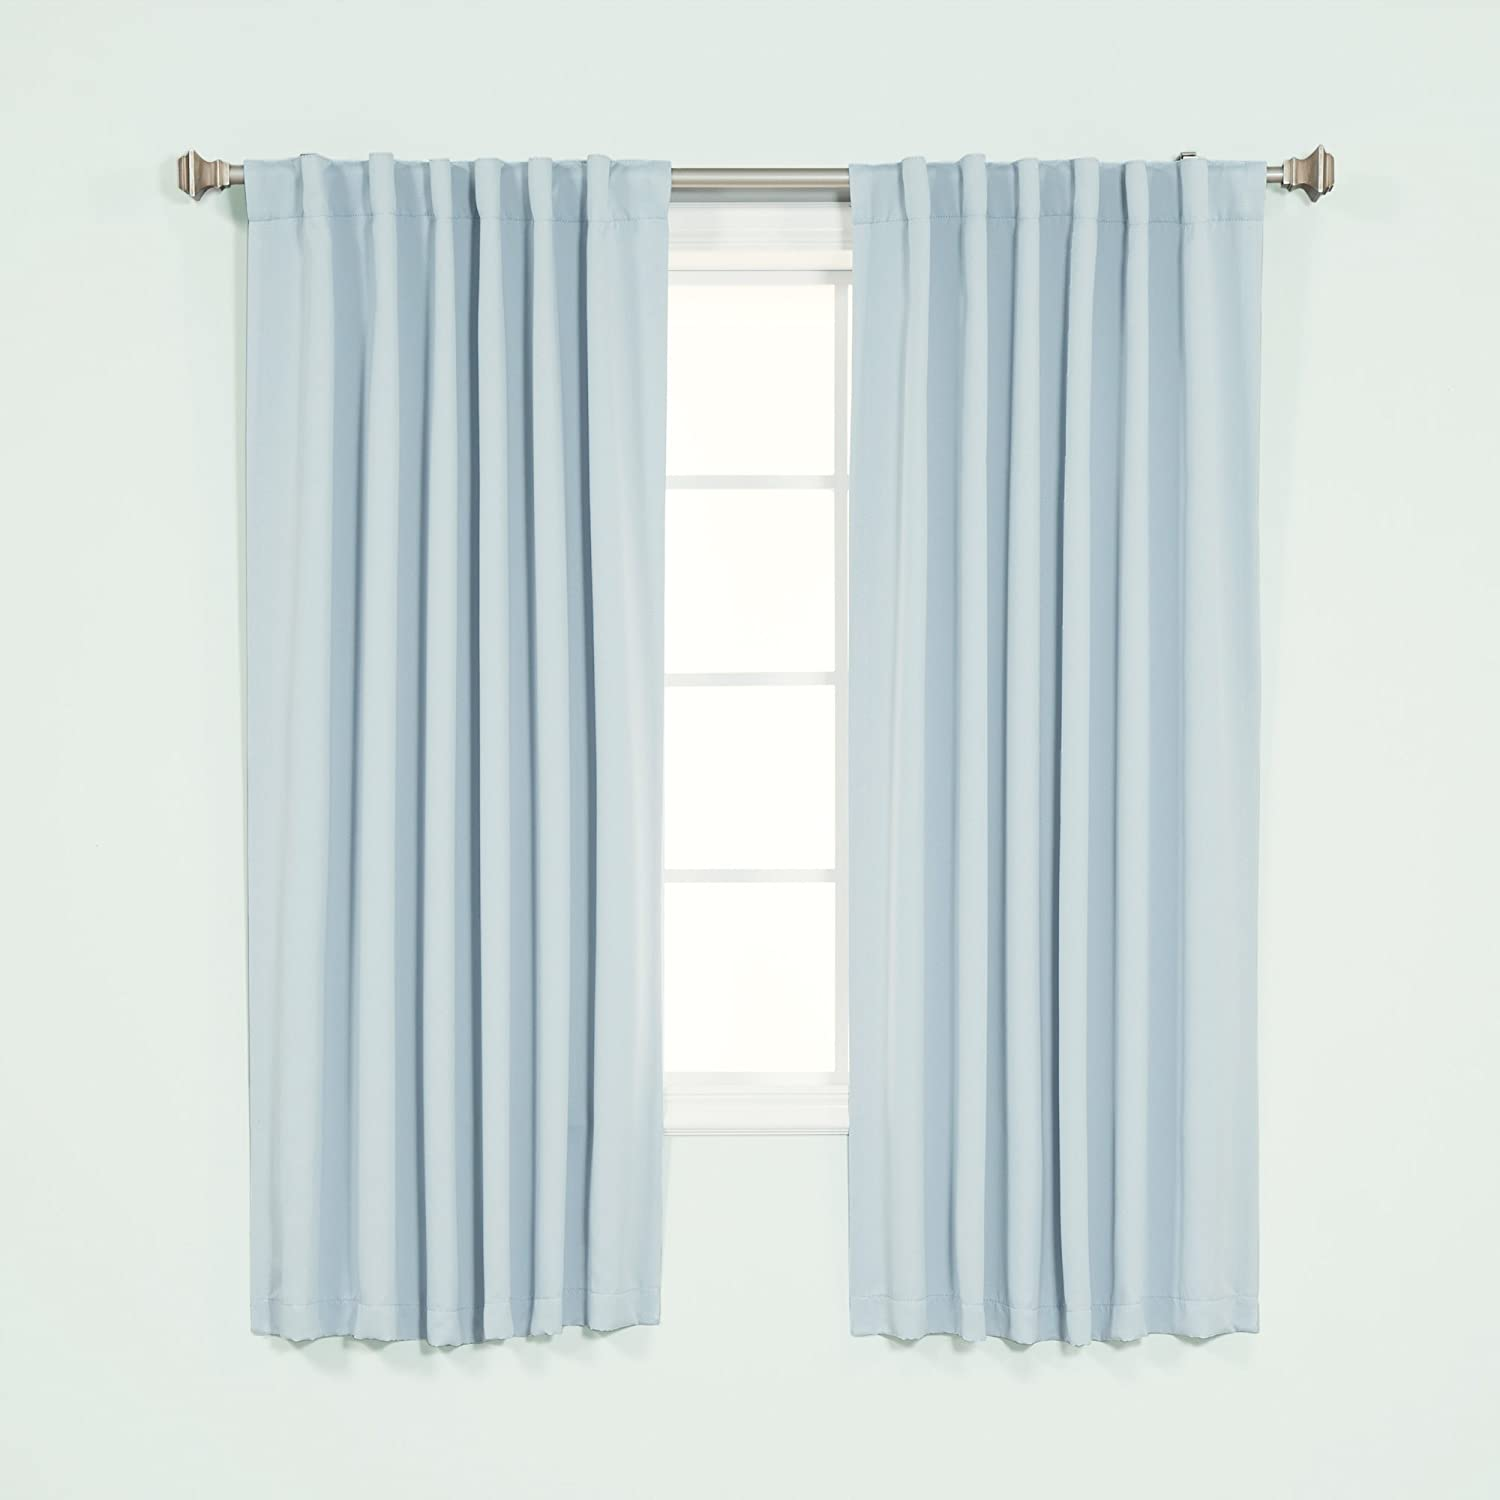 Best Genuine Free Shipping Home Fashion Basic Thermal - Insulated Ba Curtains Blackout Brand Cheap Sale Venue